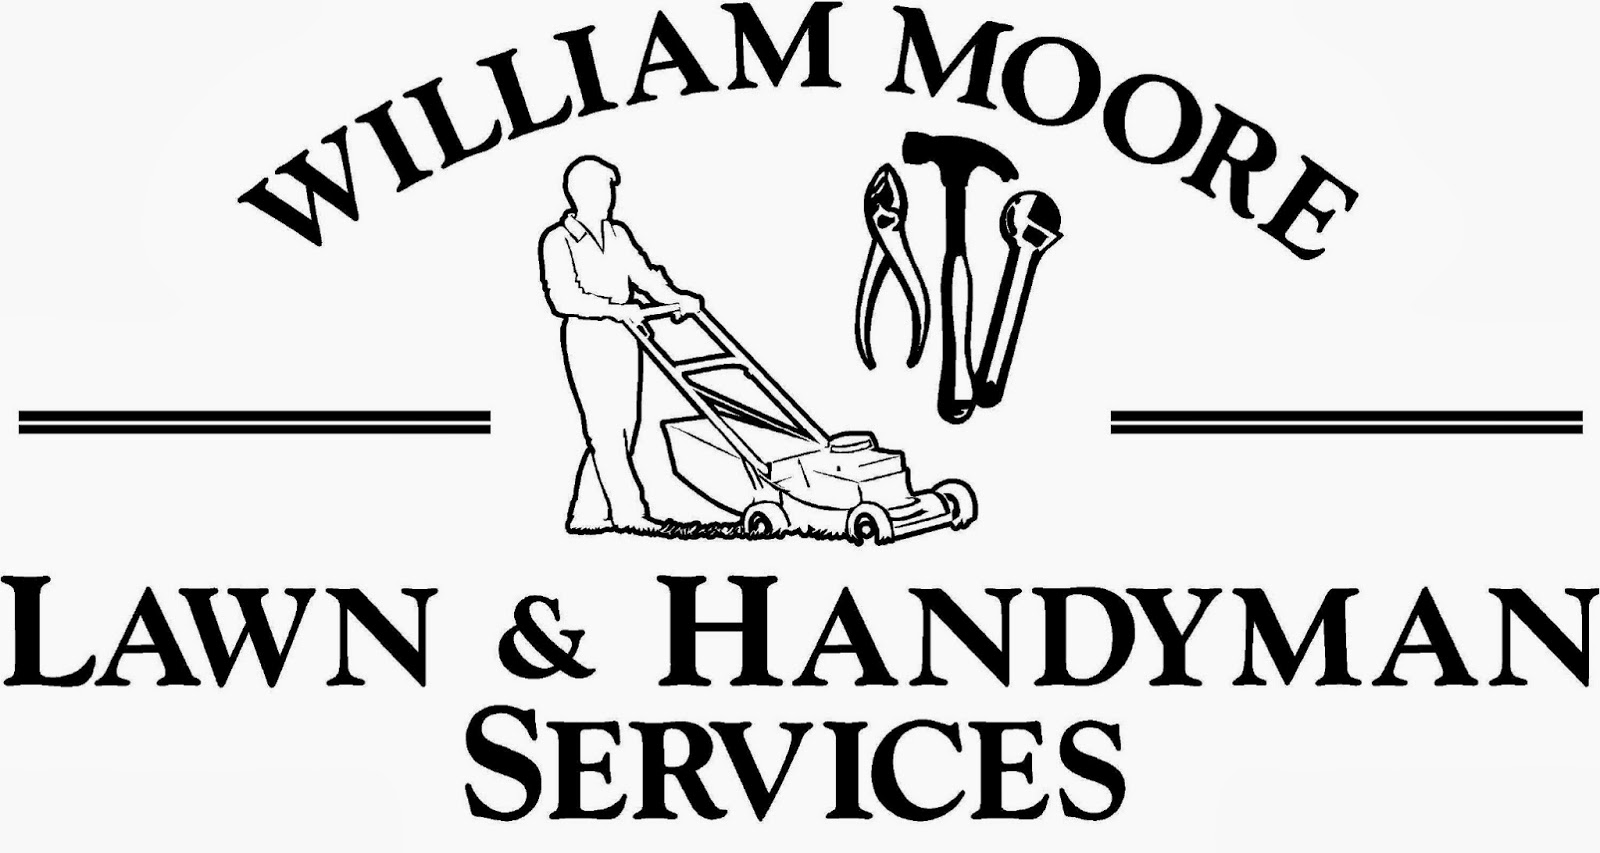 Handyman and Lawn Service Blog: Services